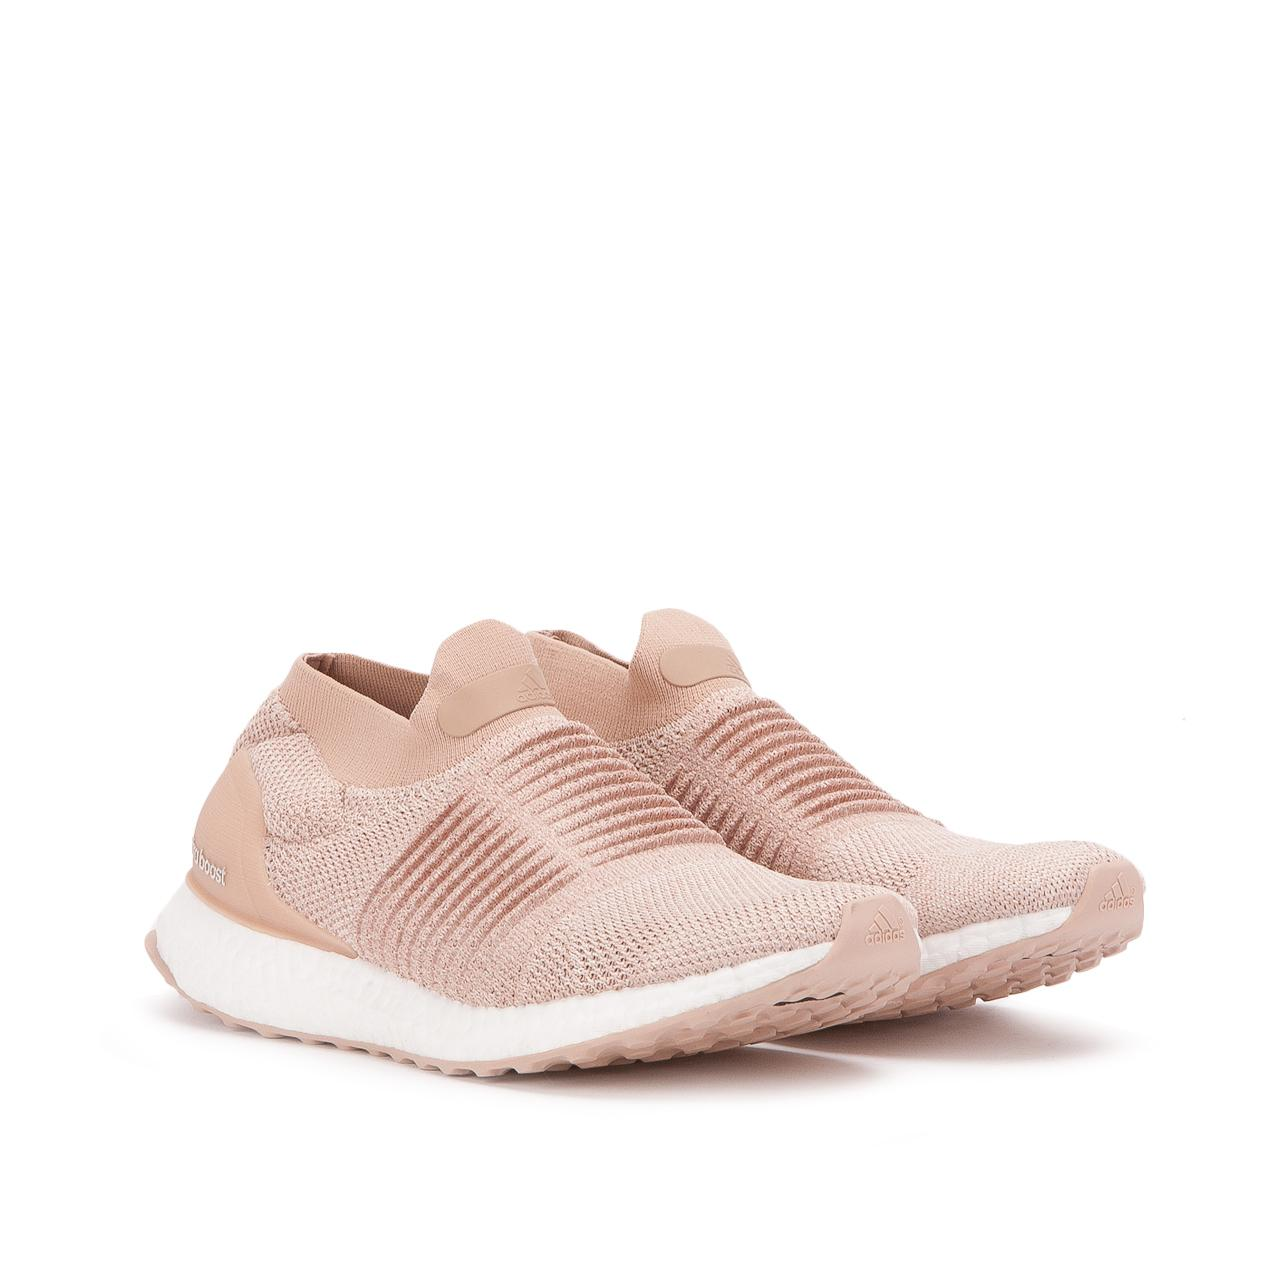 1be6735852ec5 adidas Ultra Boost Laceless W in Pink - Save 56.115107913669064% - Lyst